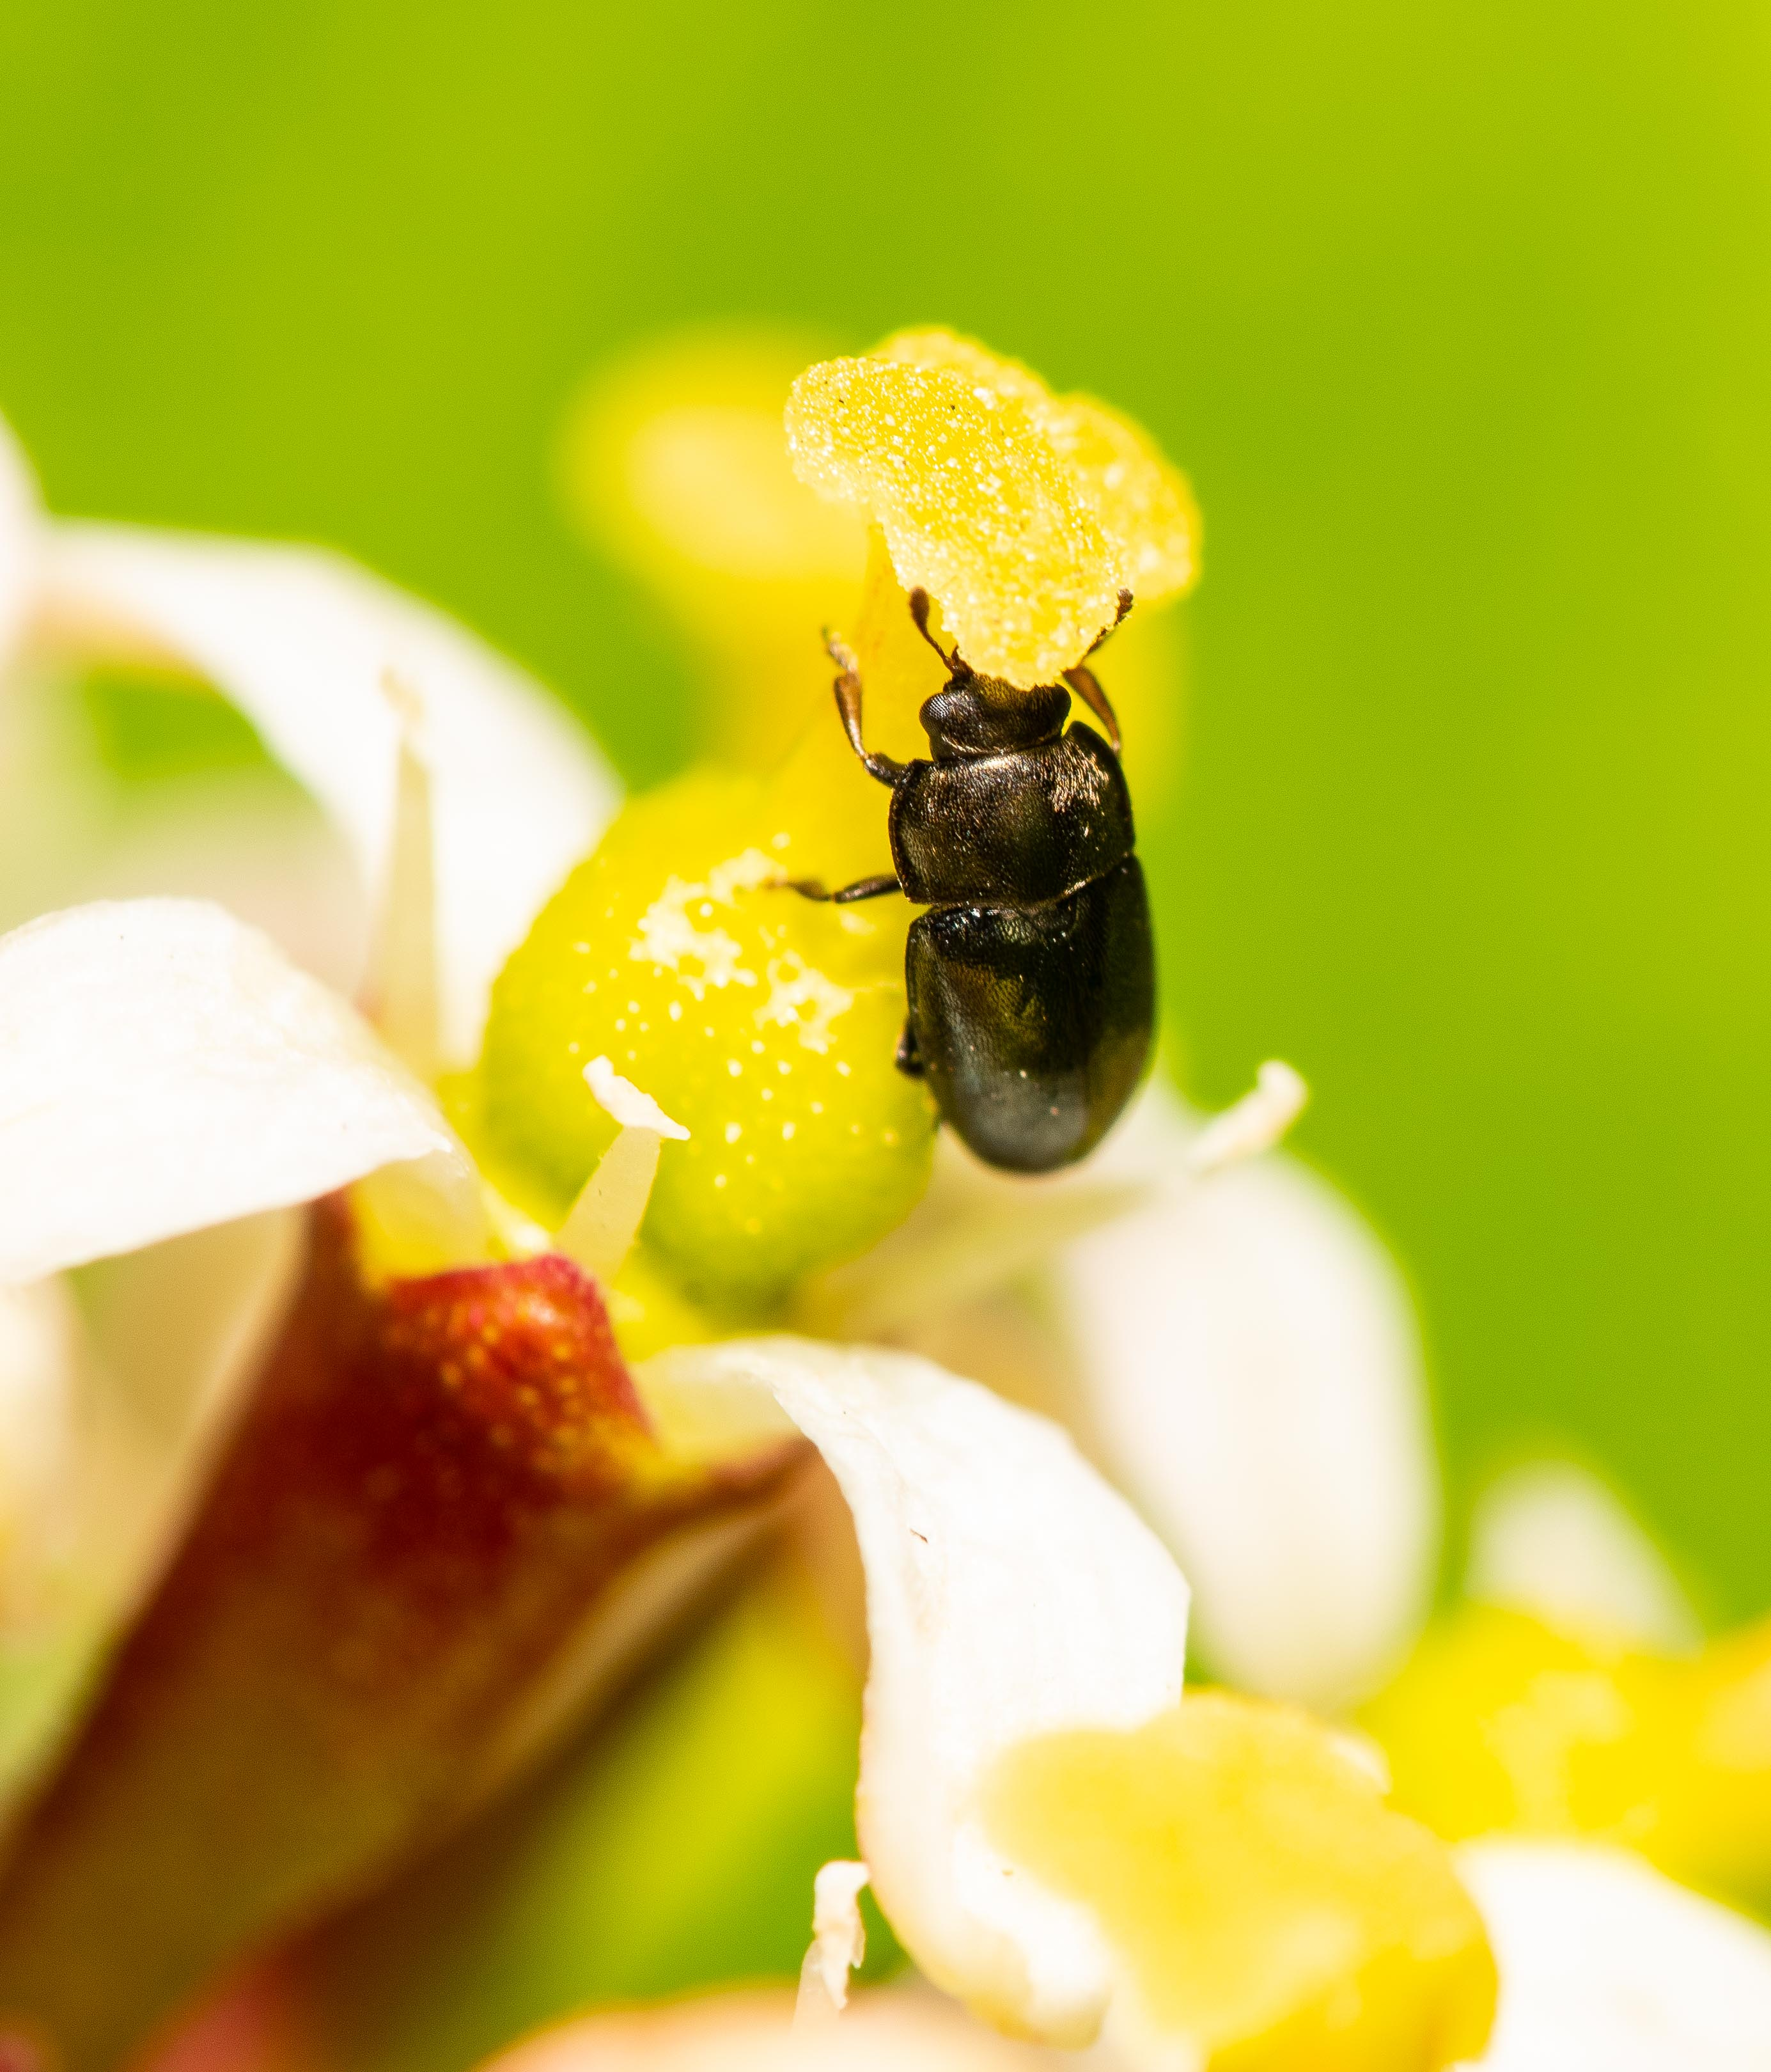 Garden_insects_28-3-2020_lo-res-3